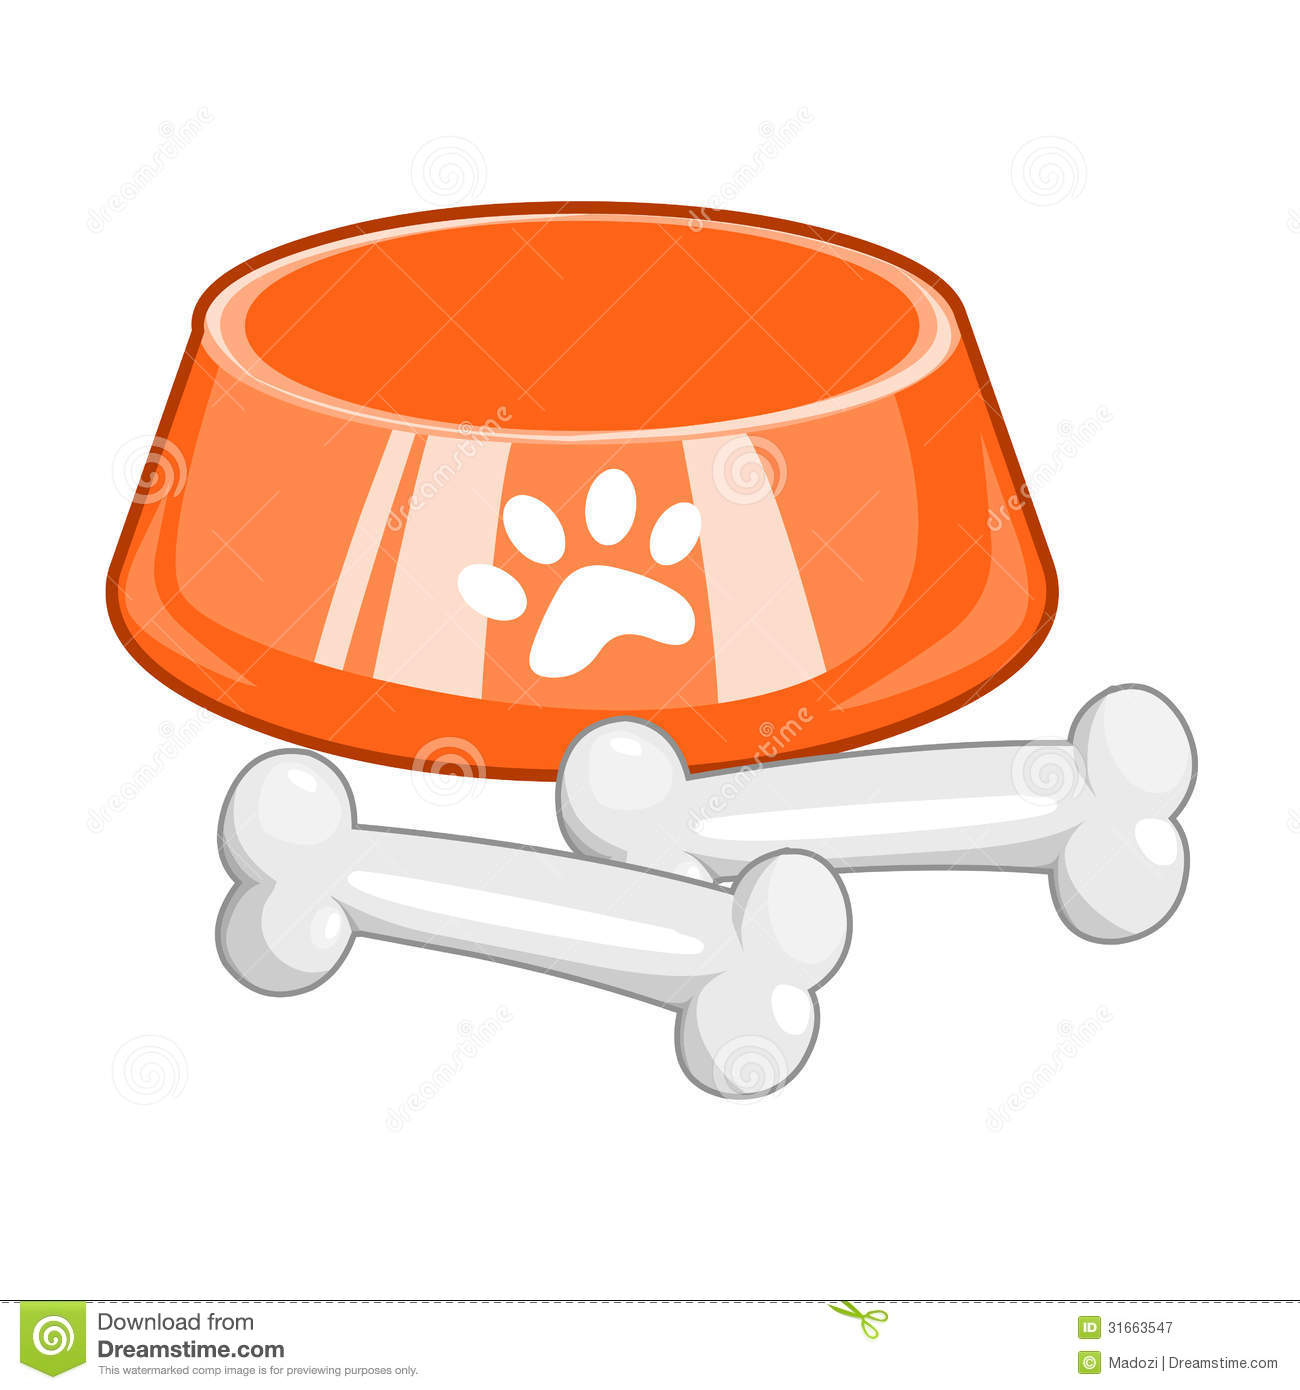 Bowl clipart cartoon.  collection of dog